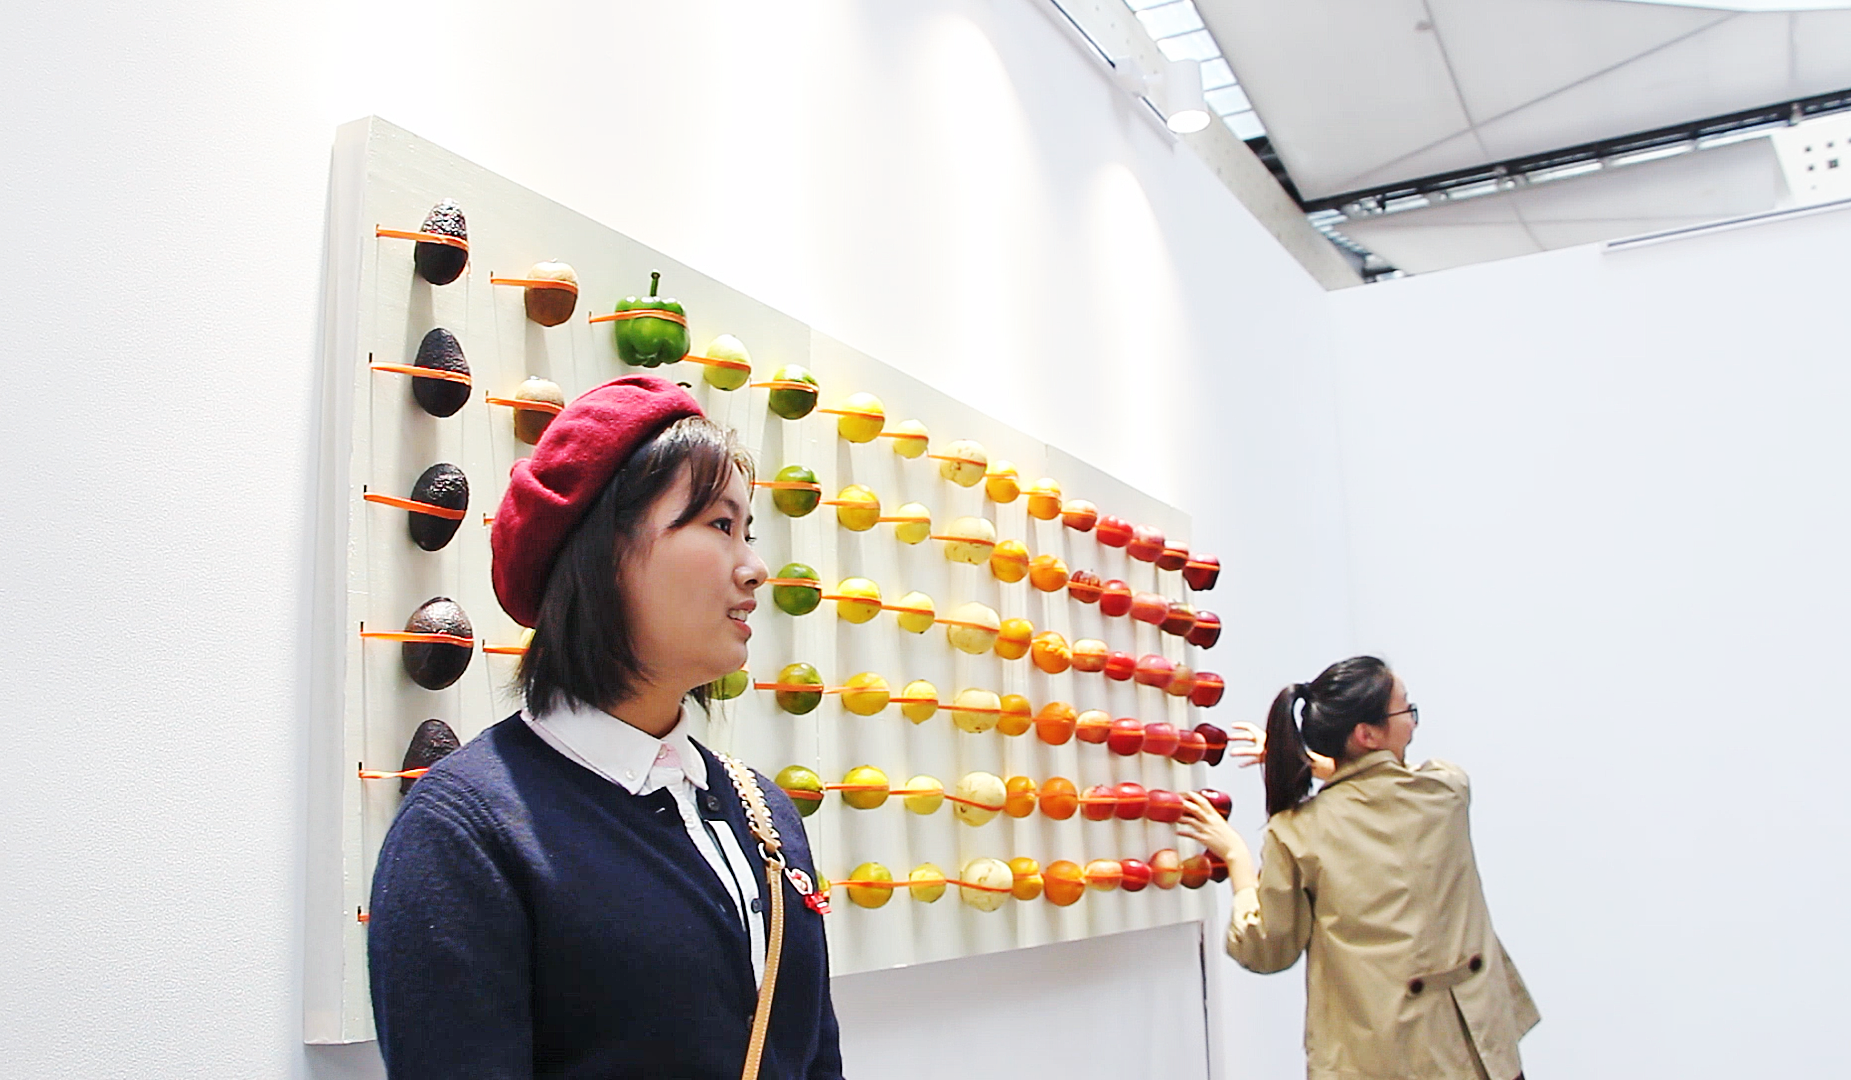 Electronic+Fruit Wall 5_HE Wei_Photo by Yangxingyue Wang.png